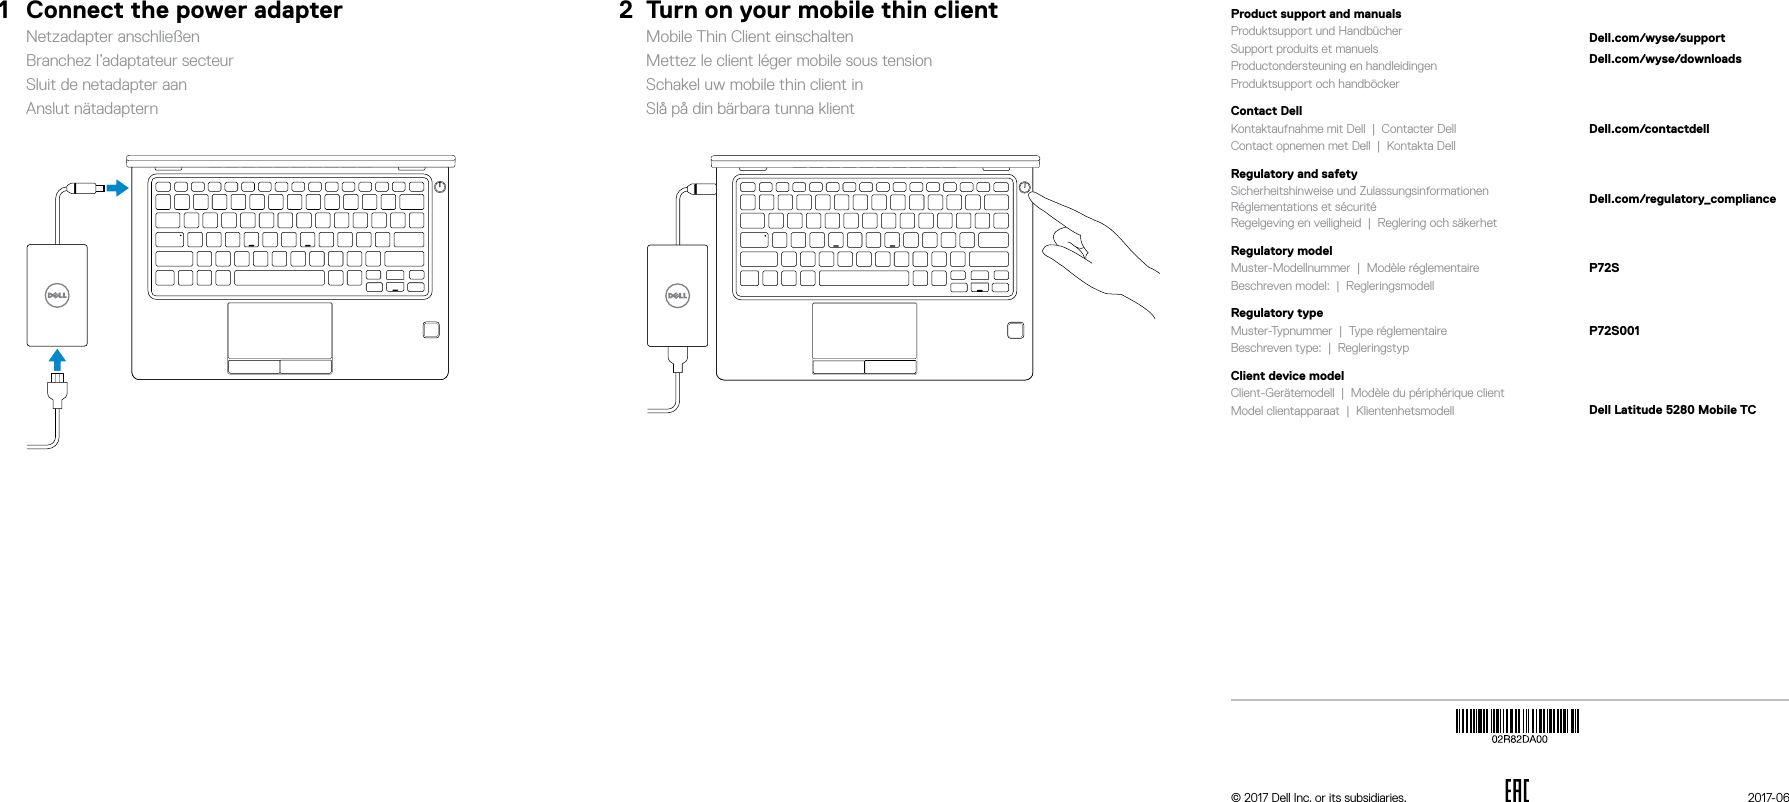 Dell Wyse 5280 mobile thin client Latitude Quick Start Guide